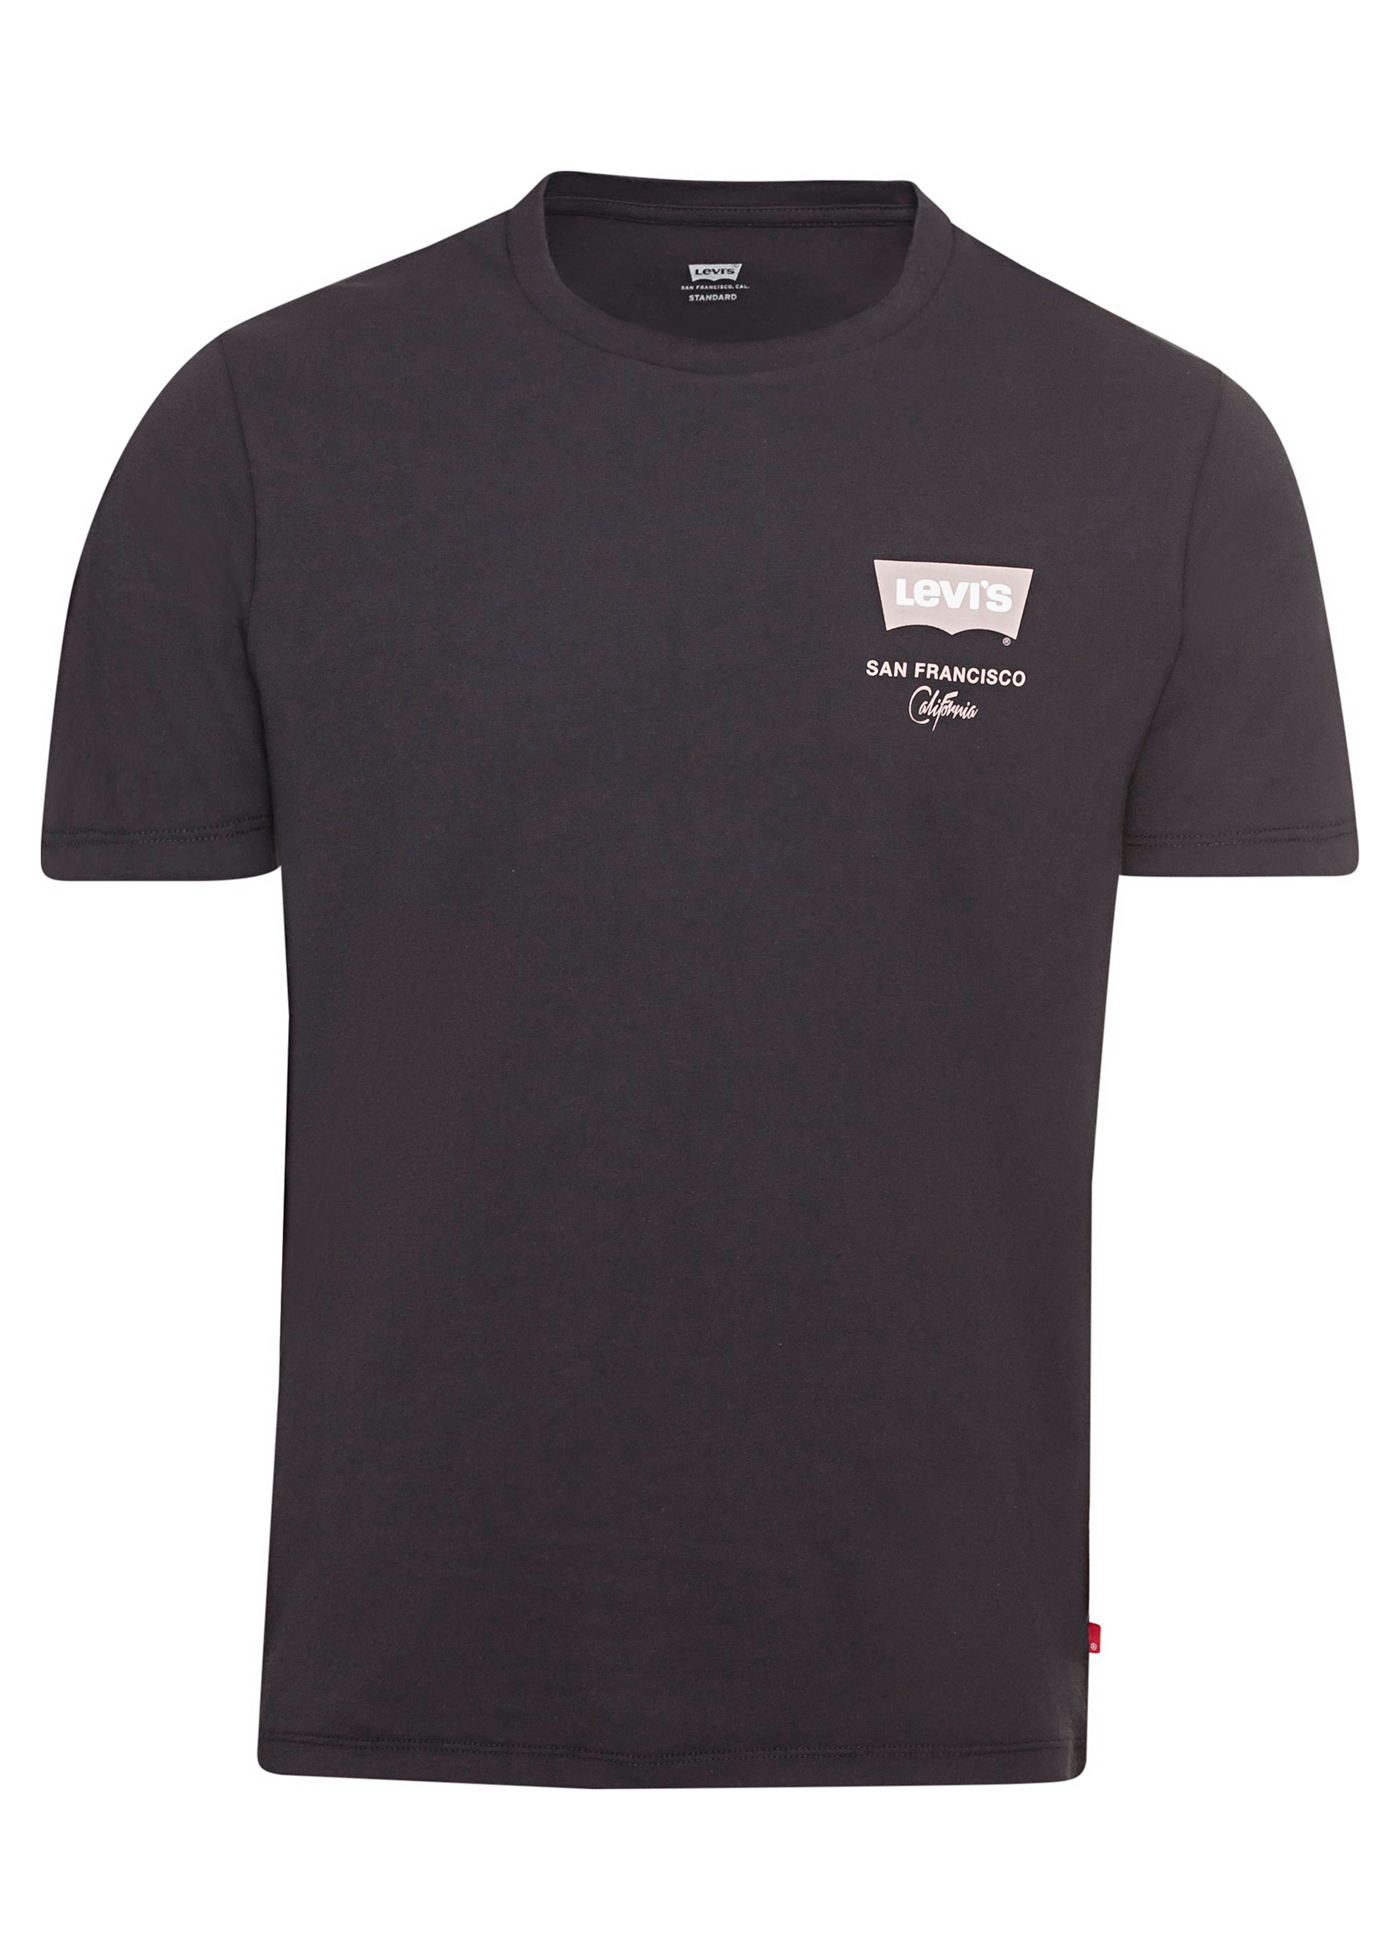 HOUSEMARK GRAPHIC TEE LEFT CHE image number 0